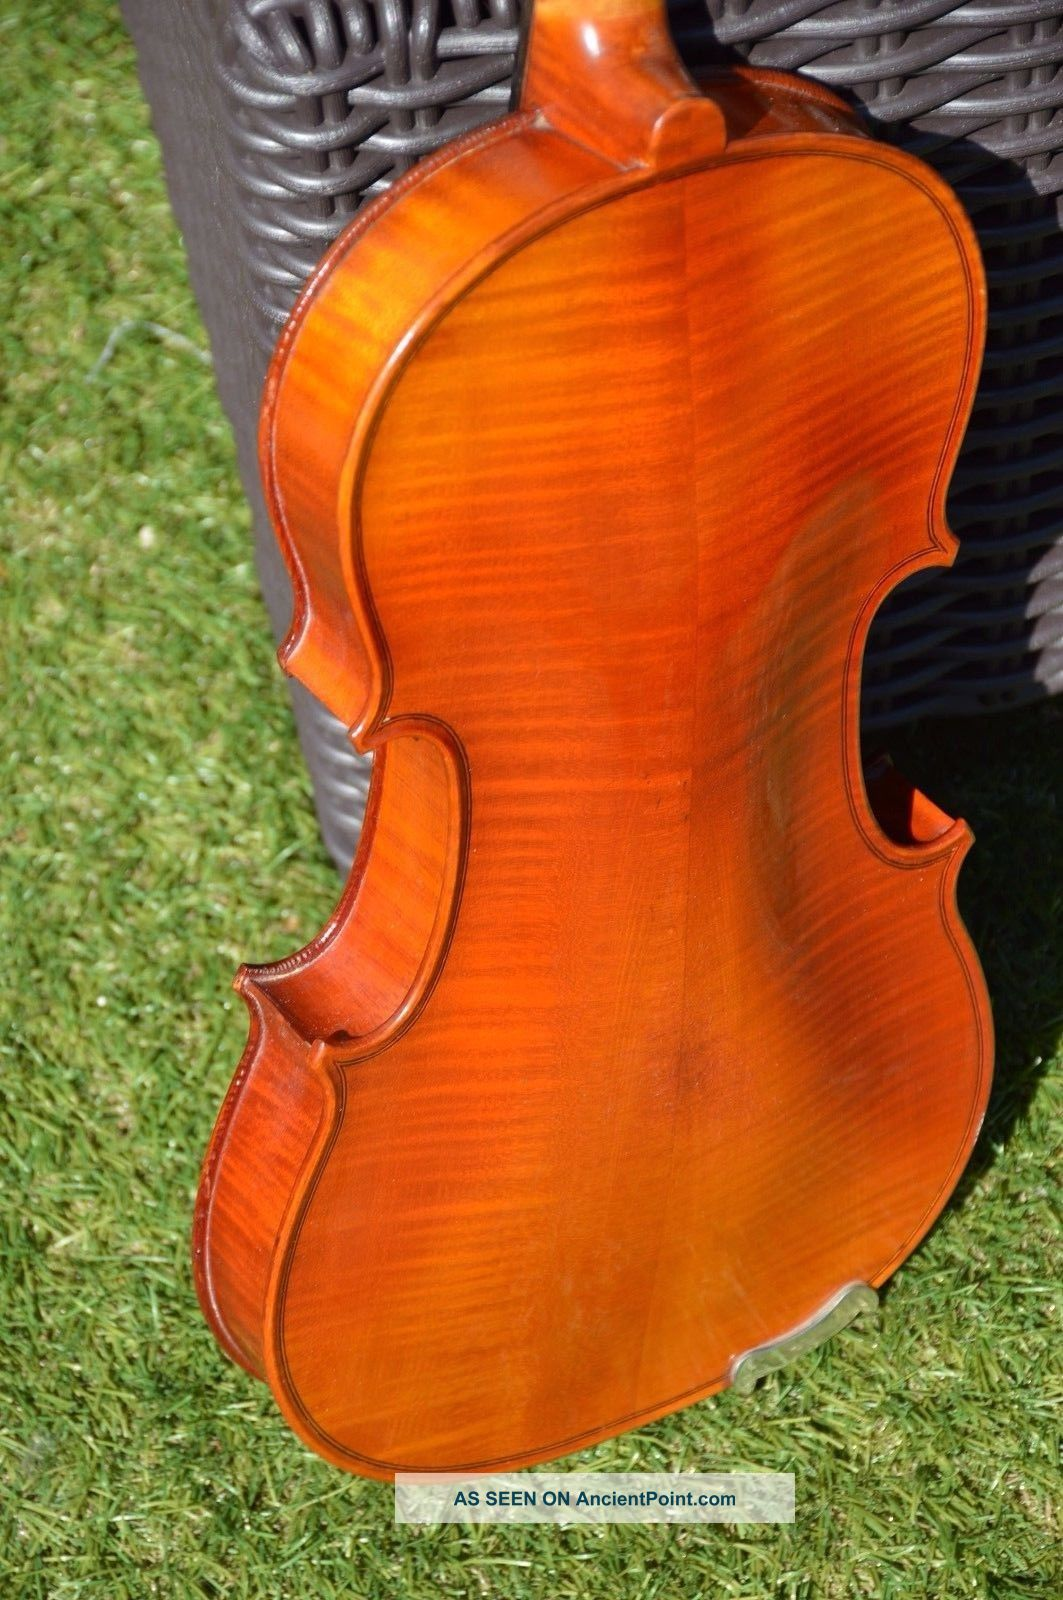 Old French Violin Mirecourt 4/4 String photo